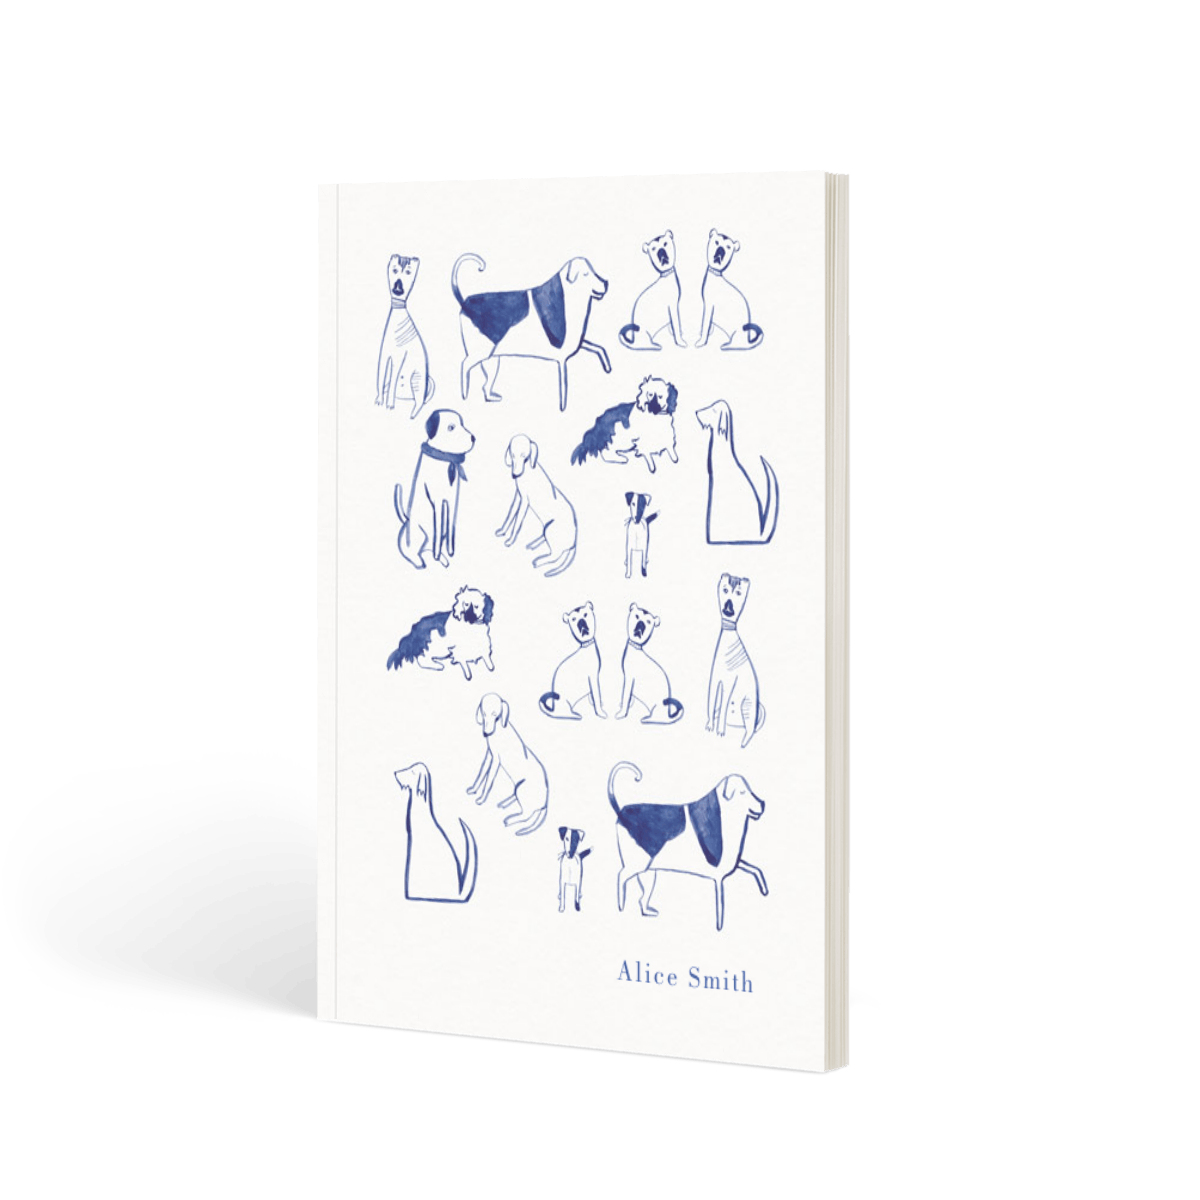 Https%3a%2f%2fwww.papier.com%2fproduct image%2f59889%2f41%2fposh dogs 14300 front 1570270196.png?ixlib=rb 1.1